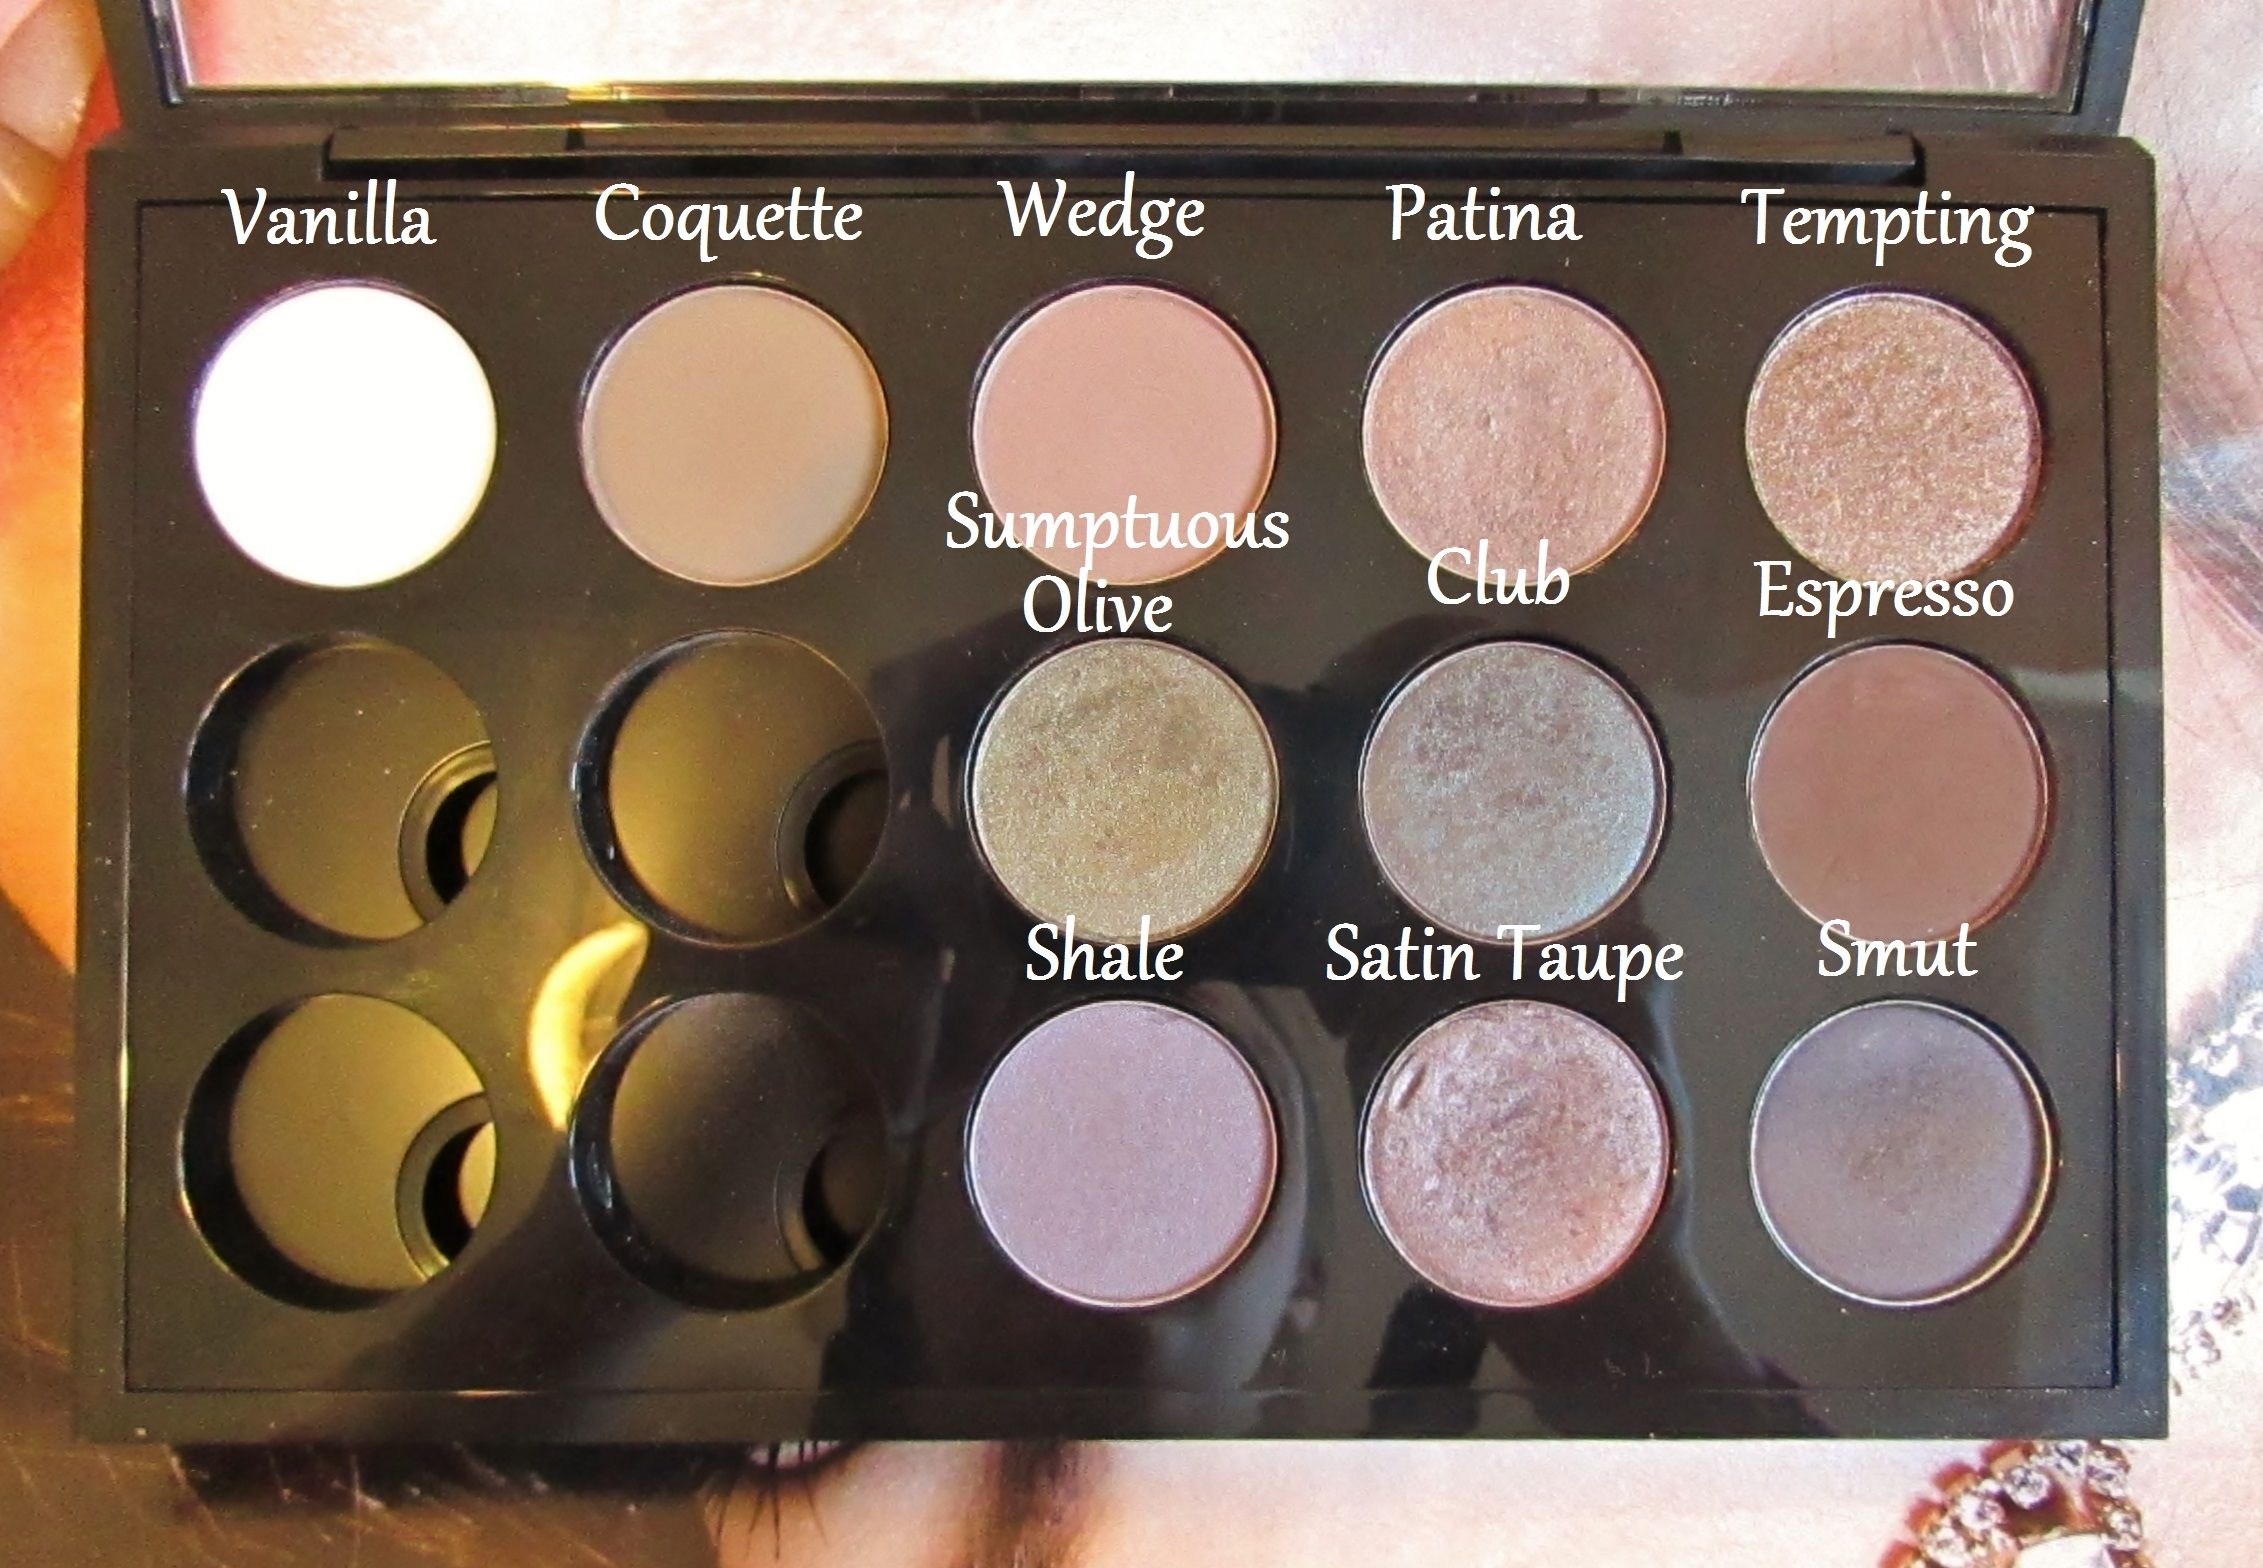 MAC Eyeshadow Palette - Vanilla, Coquette, Wedge, Patina, Tempting, Sumptuous Olive, Club, Espresso, Shale, Satin Taupe, Smut